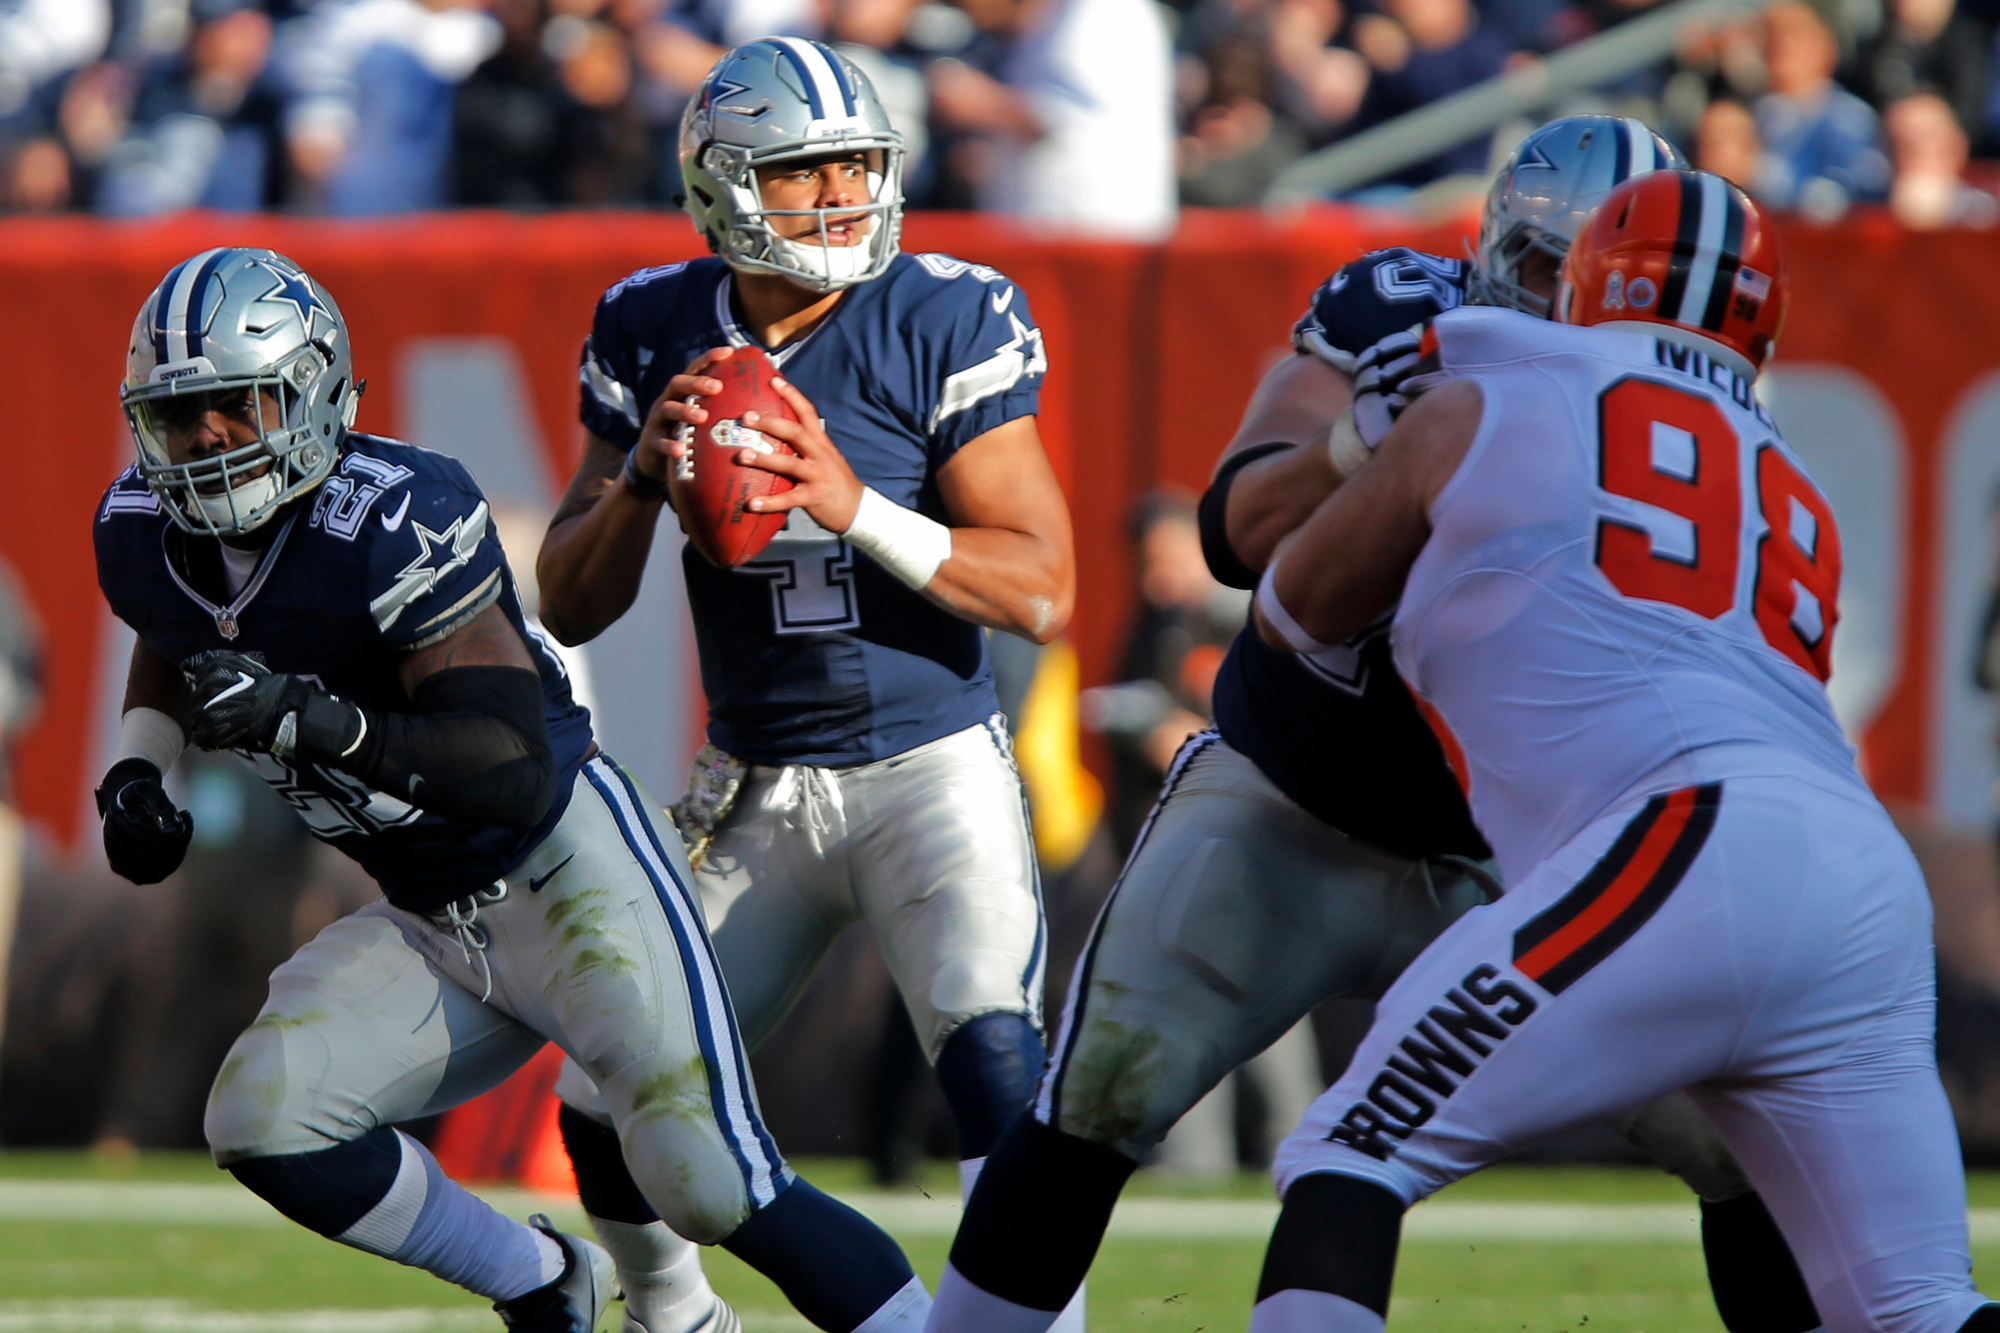 Dallas Cowboys quarterback Dak Prescott (4) looks to pass in the third quarter as the Dallas Cowboys defeat the Cleveland Browns 35-10 on Sunday, Nov. 6, 2016 in FirstEnergy Stadium in Cleveland, Ohio.